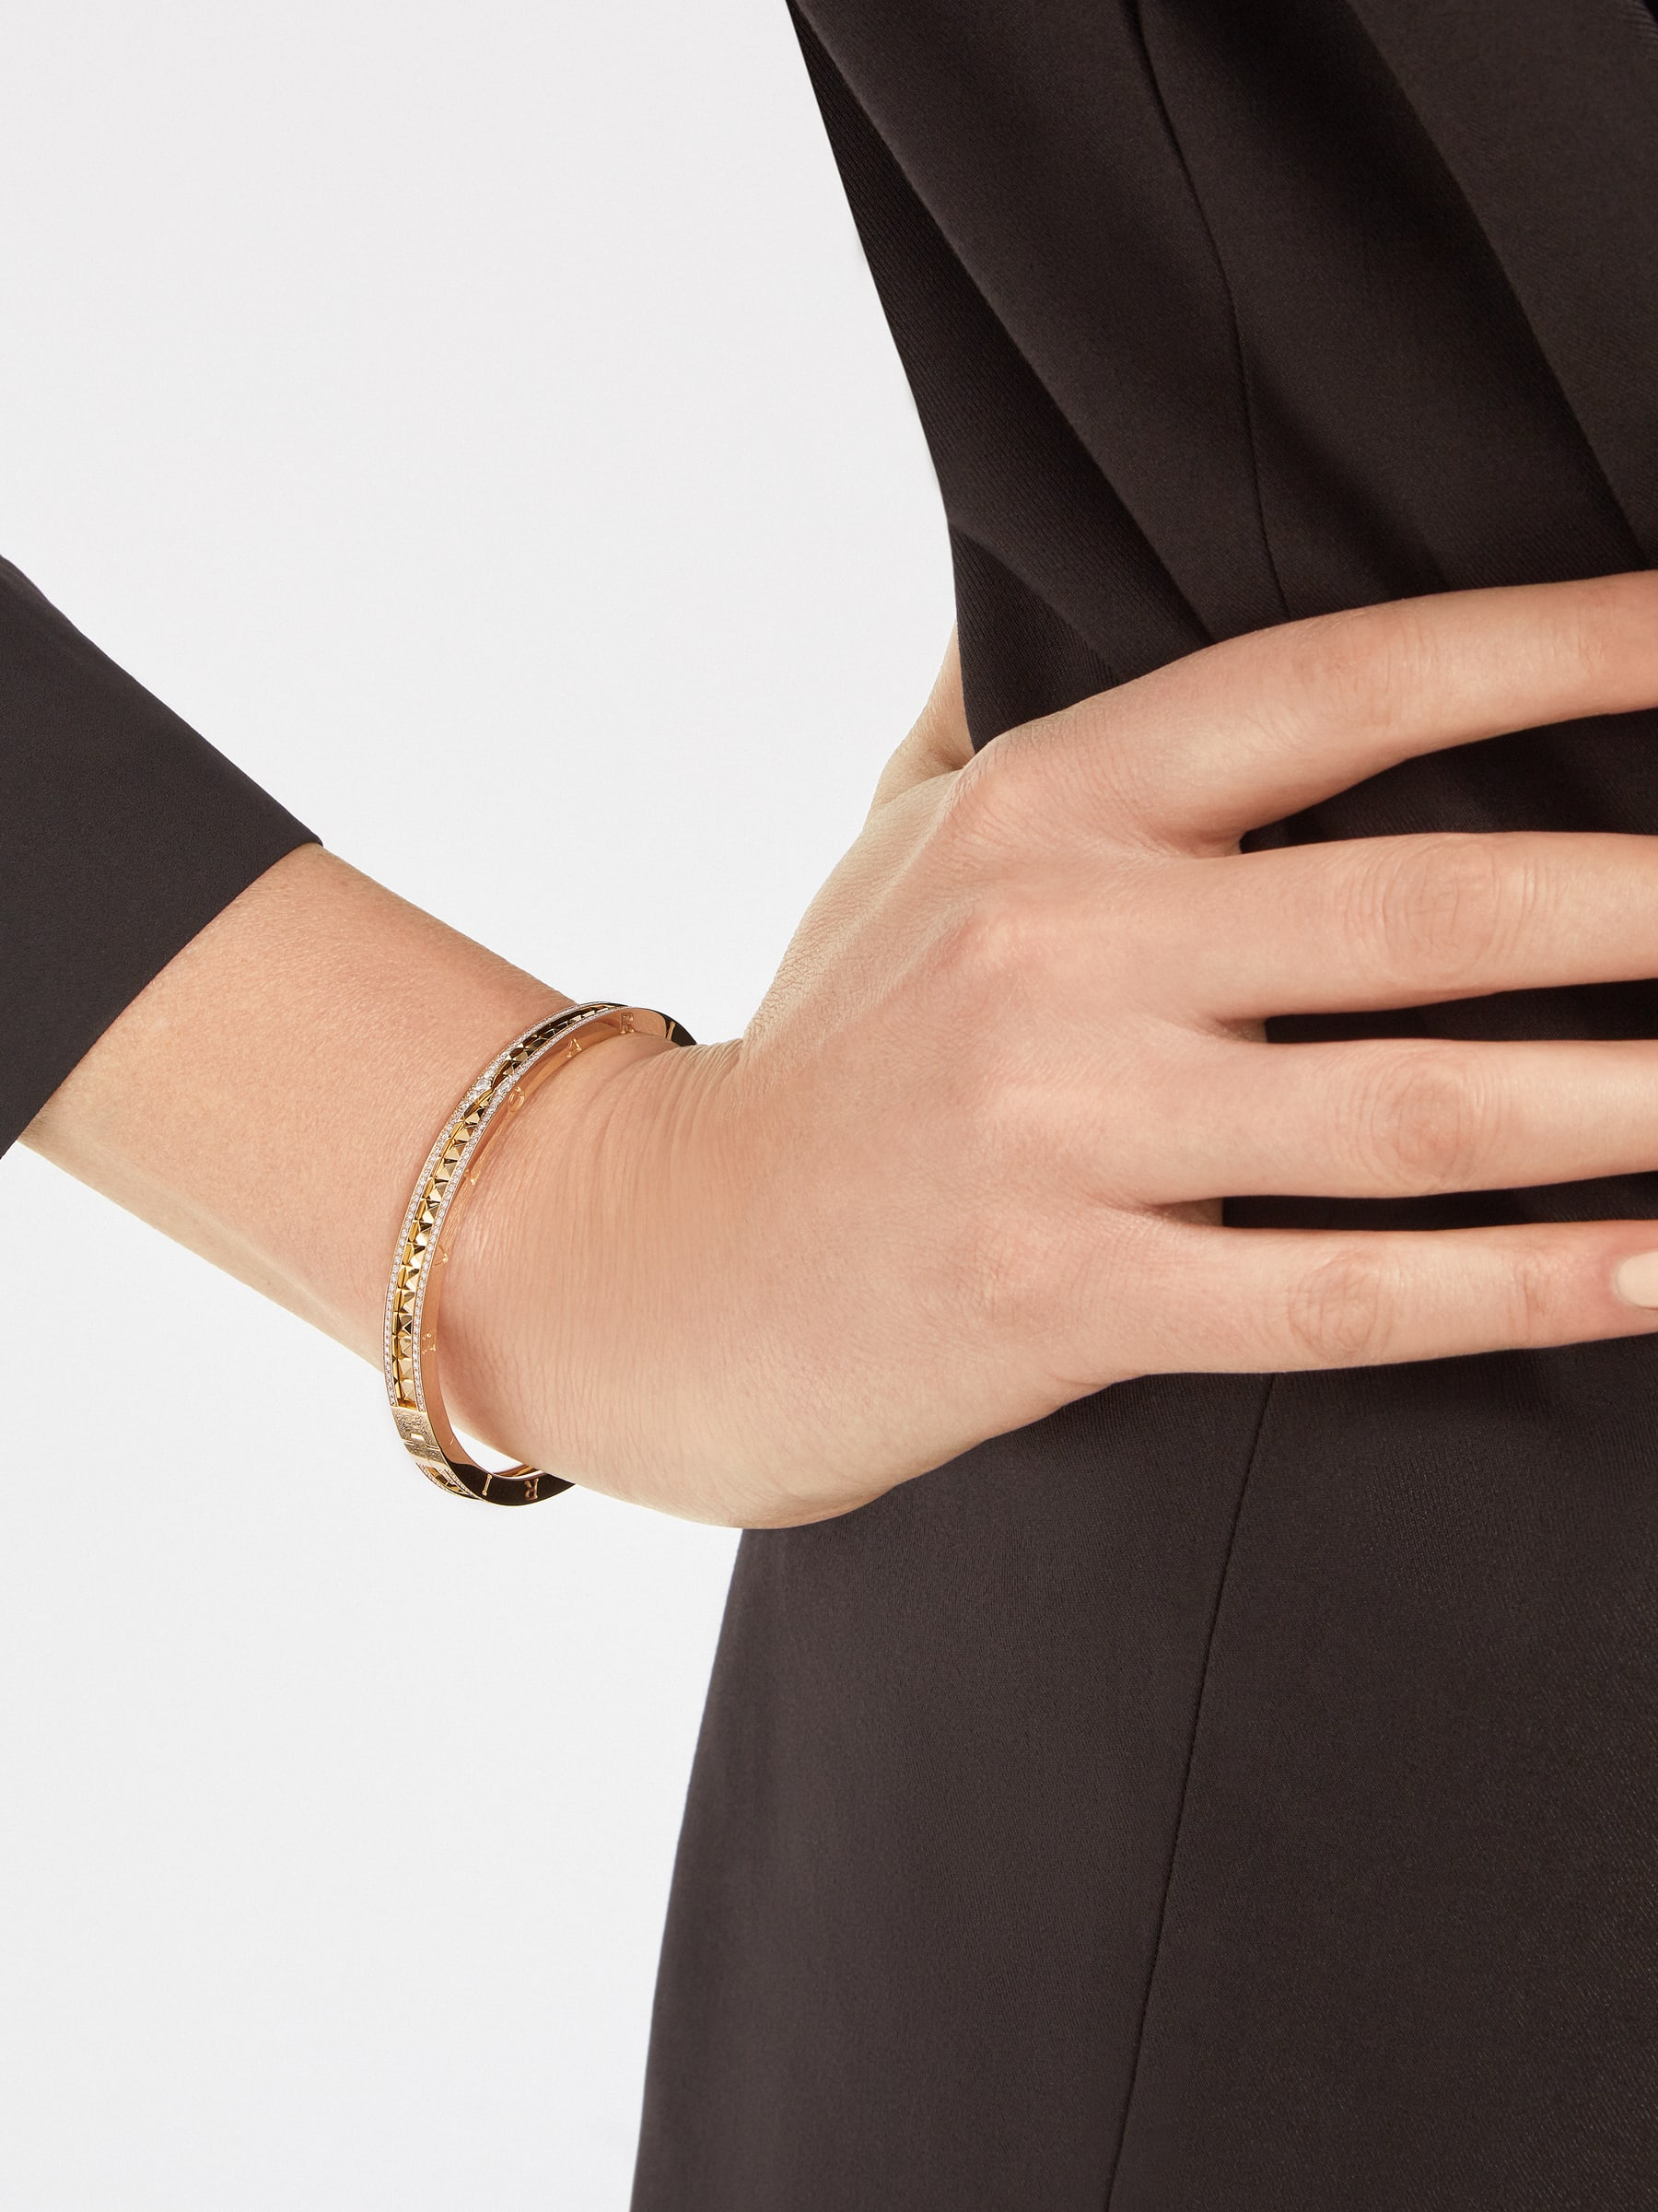 B.zero1 Rock 18 kt yellow gold bracelet with studded spiral and pavé diamonds on the edges BR859028 image 3